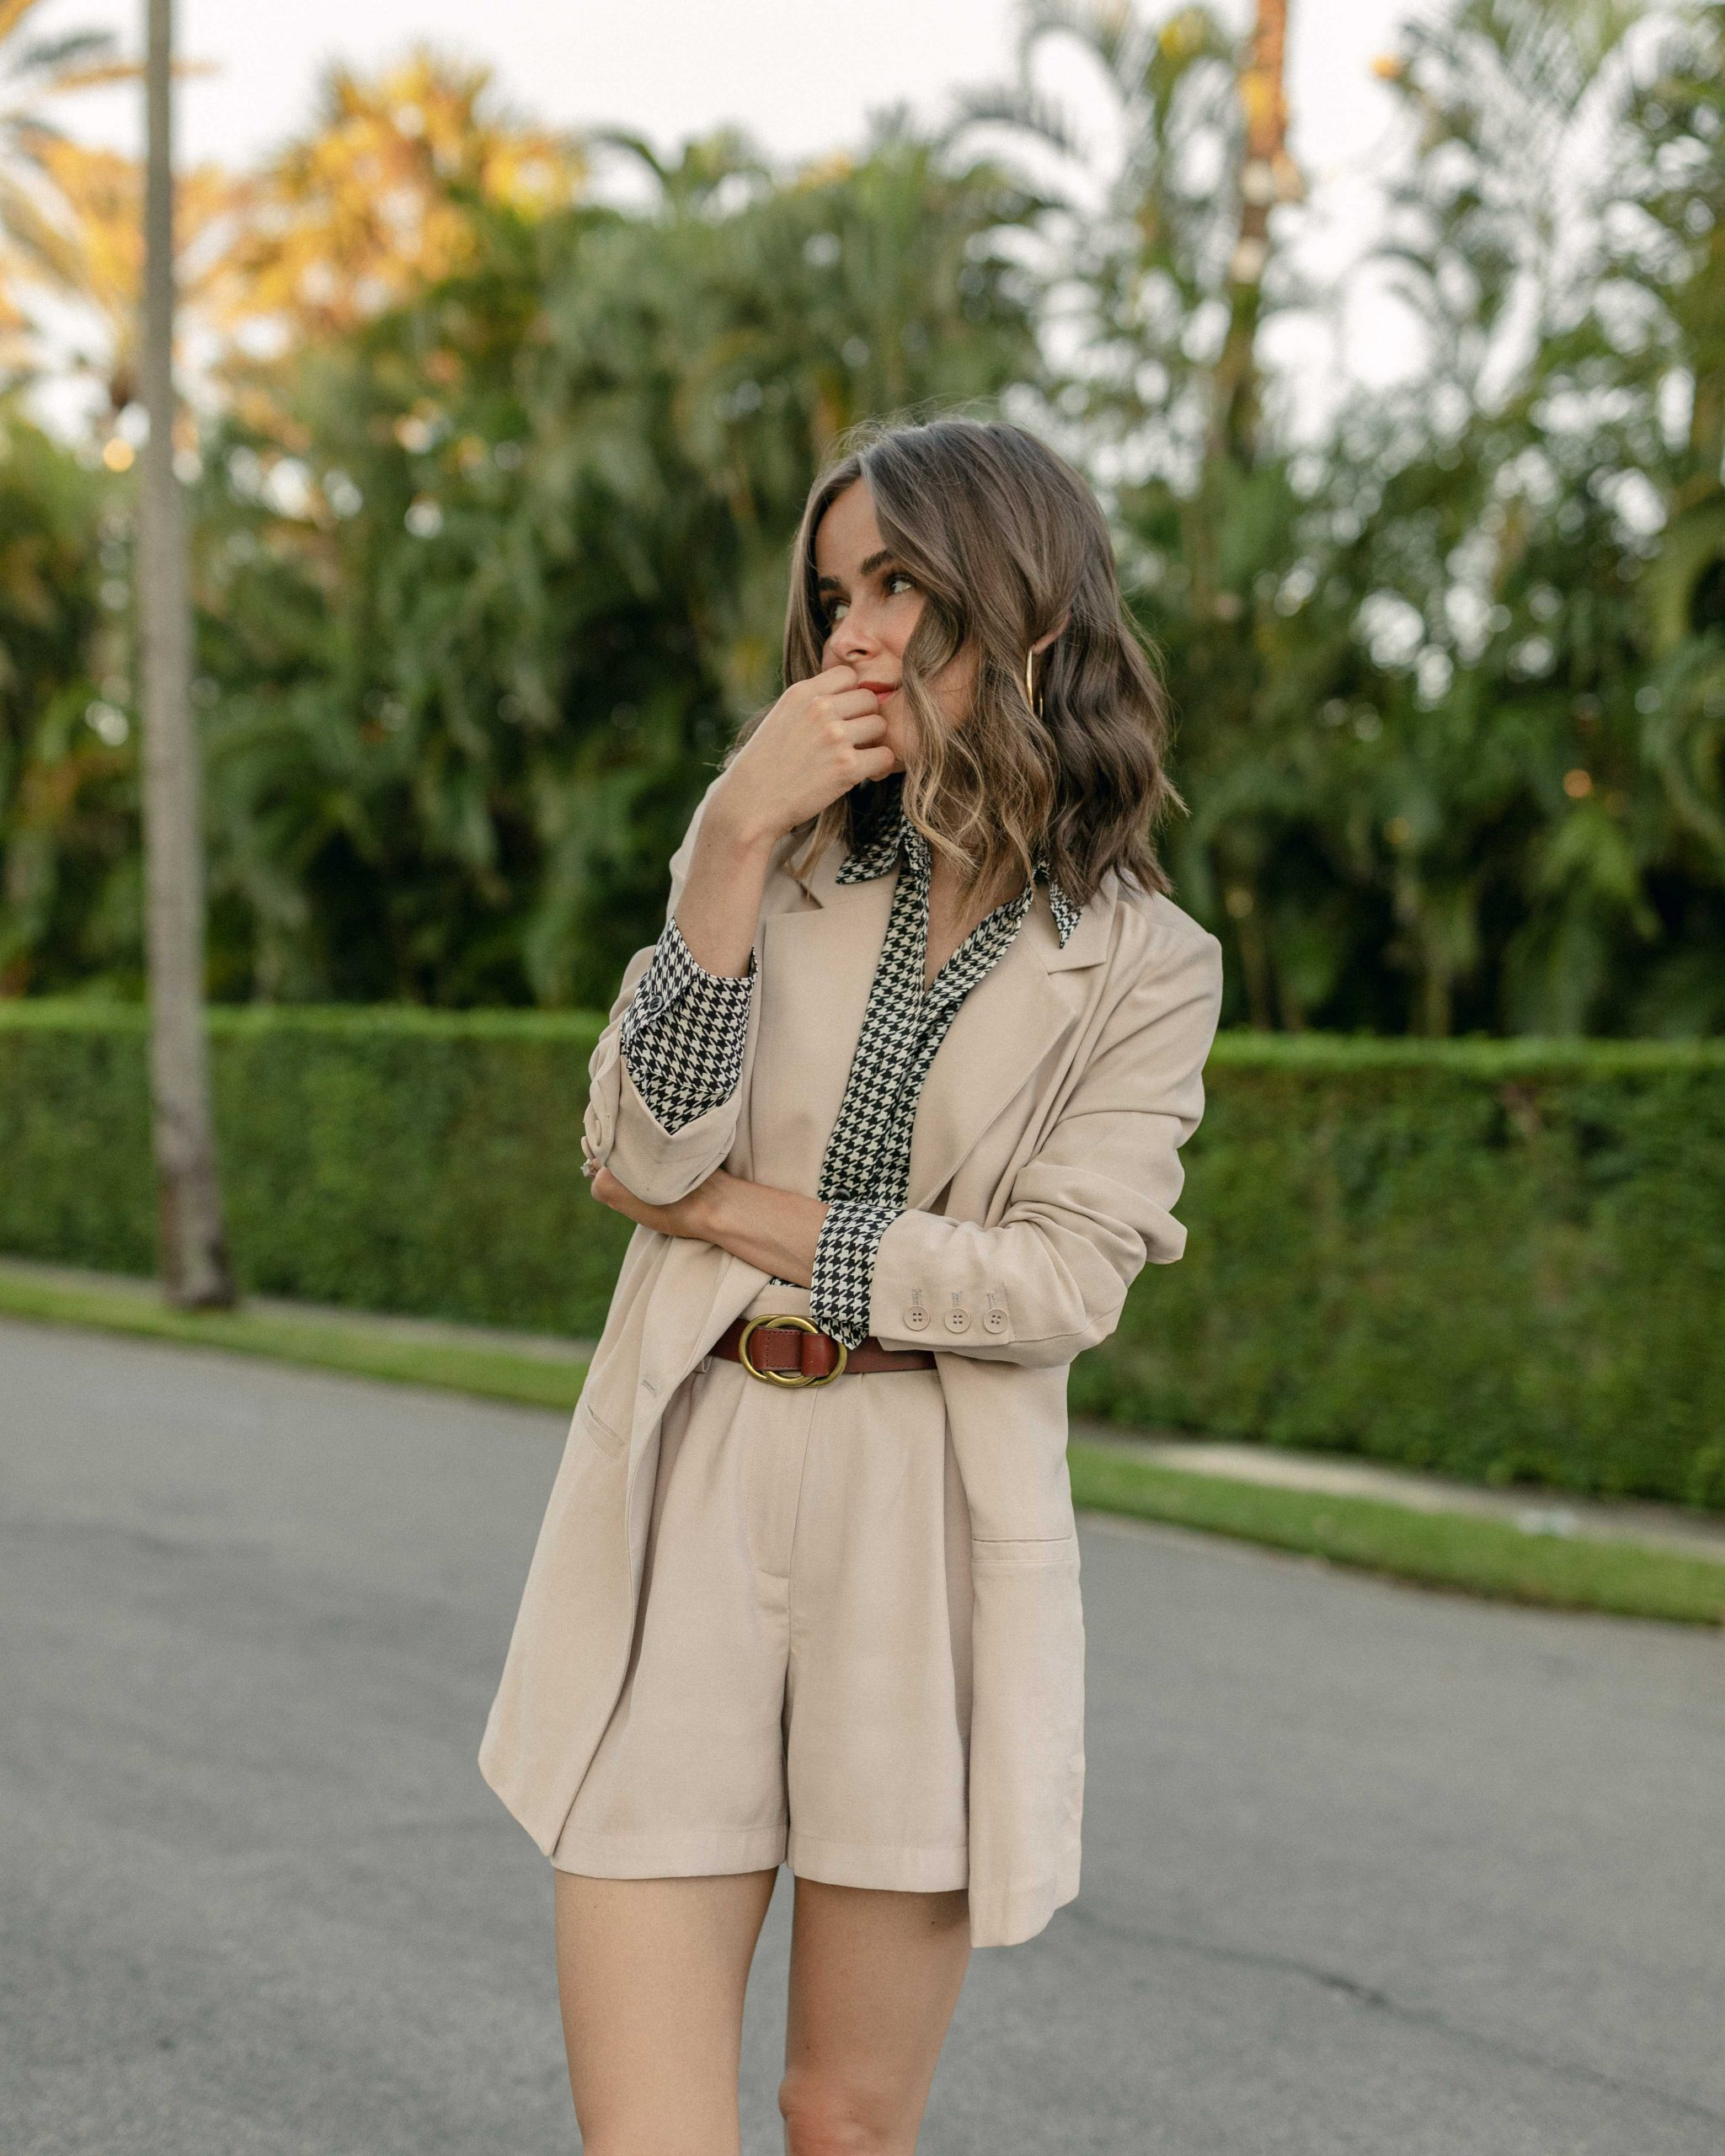 Featuring Fall Layering with Nordstrom in Florida by Stephanie Hill on The Style Bungalow